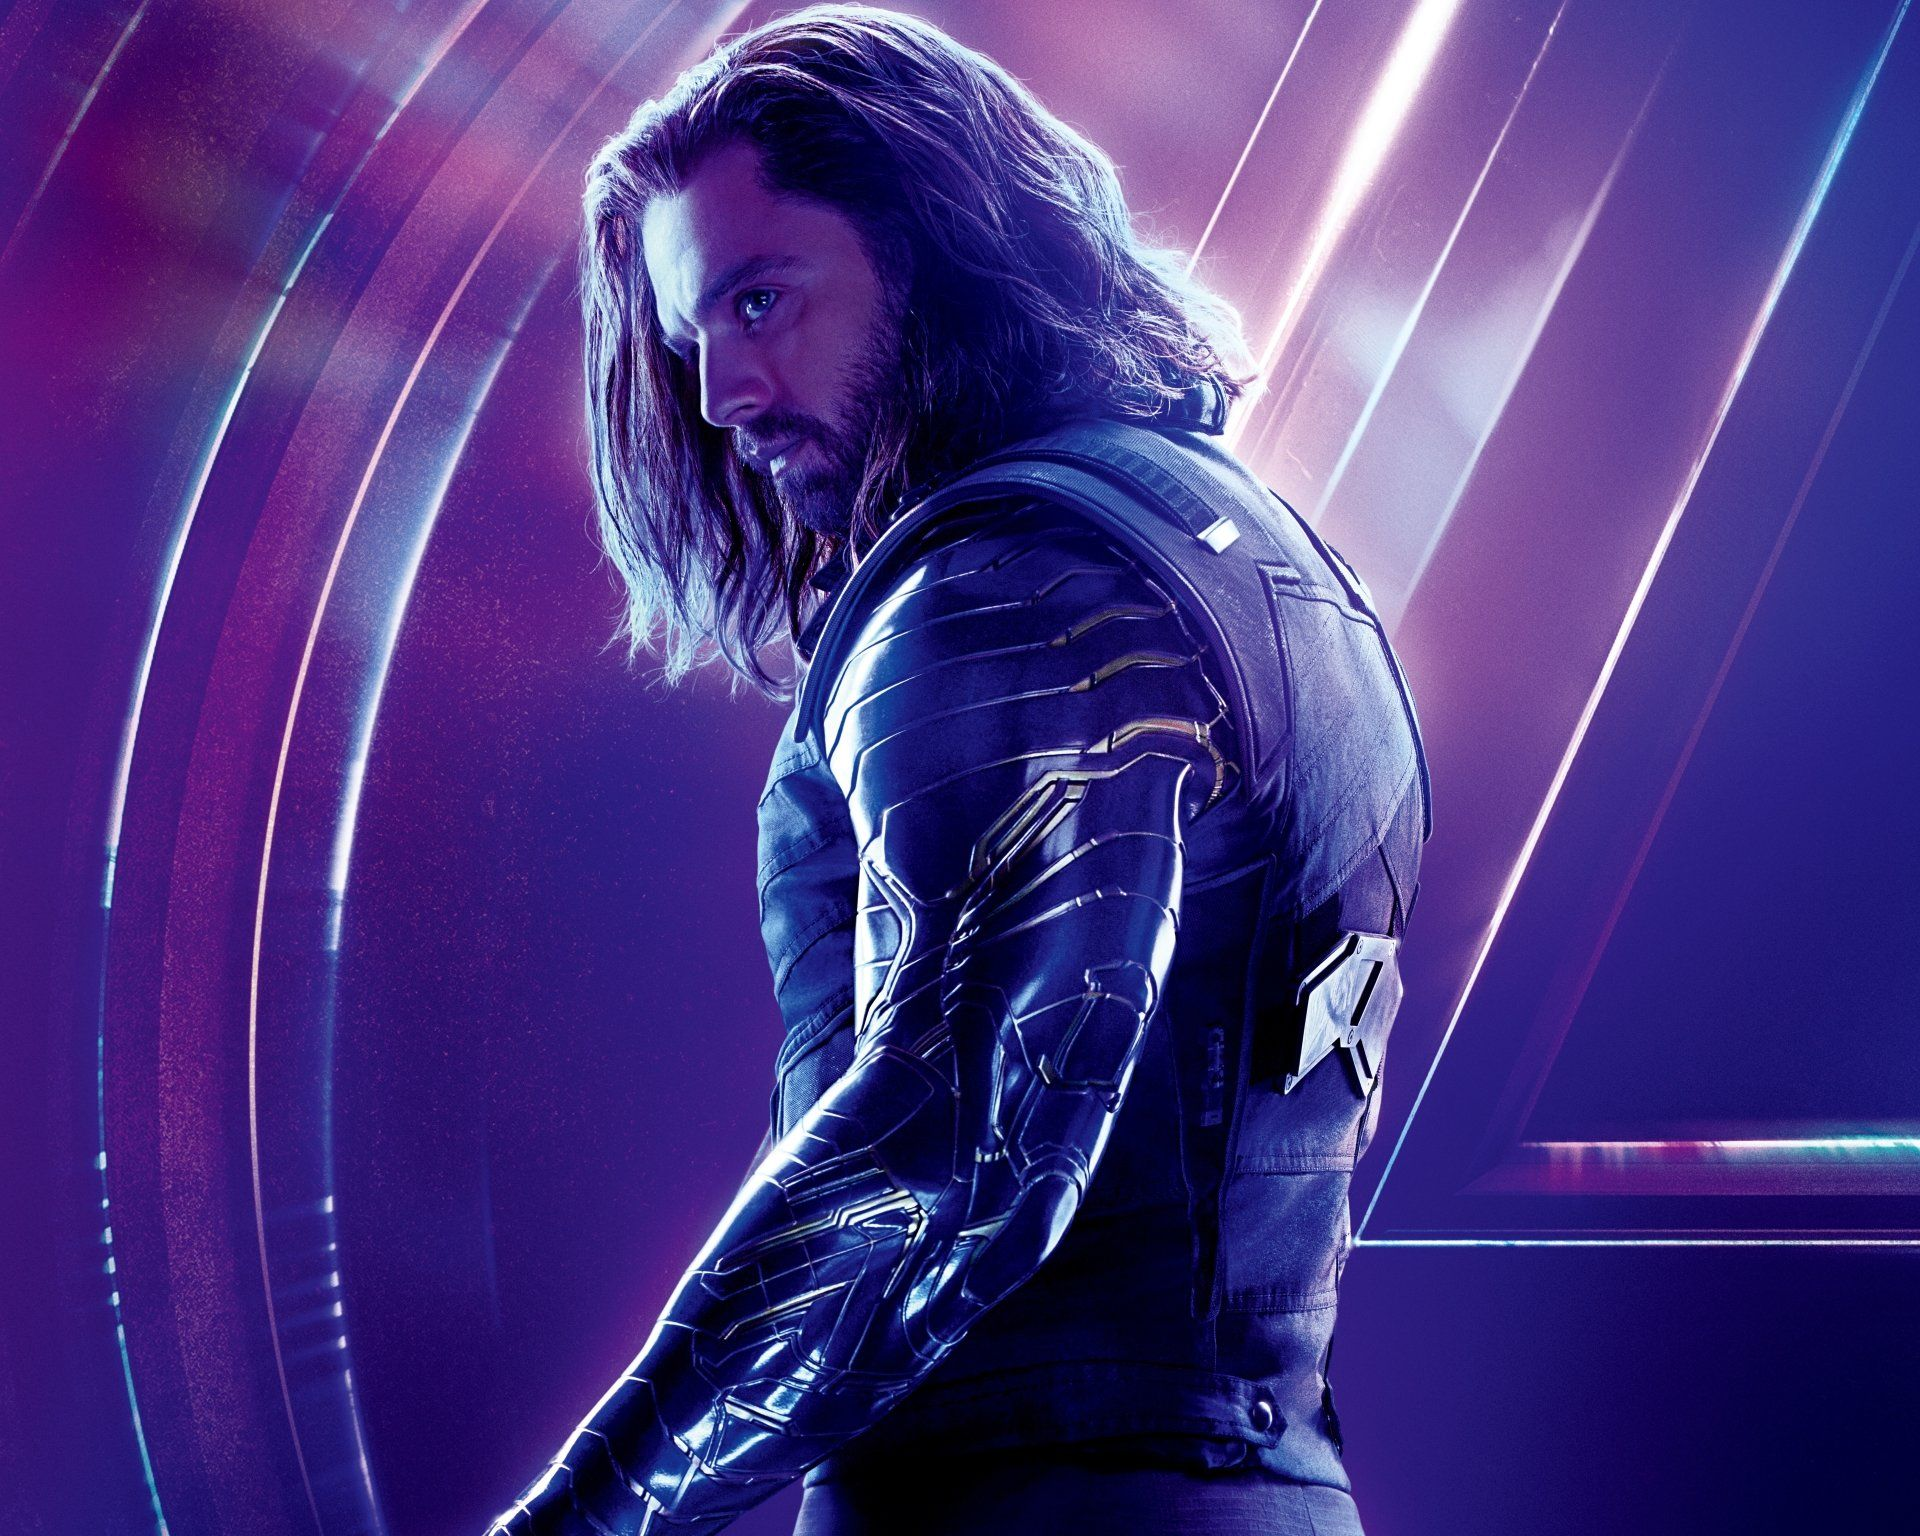 Winter Soldier Avengers Infinity War 8k Ultra Hd Wallpaper And